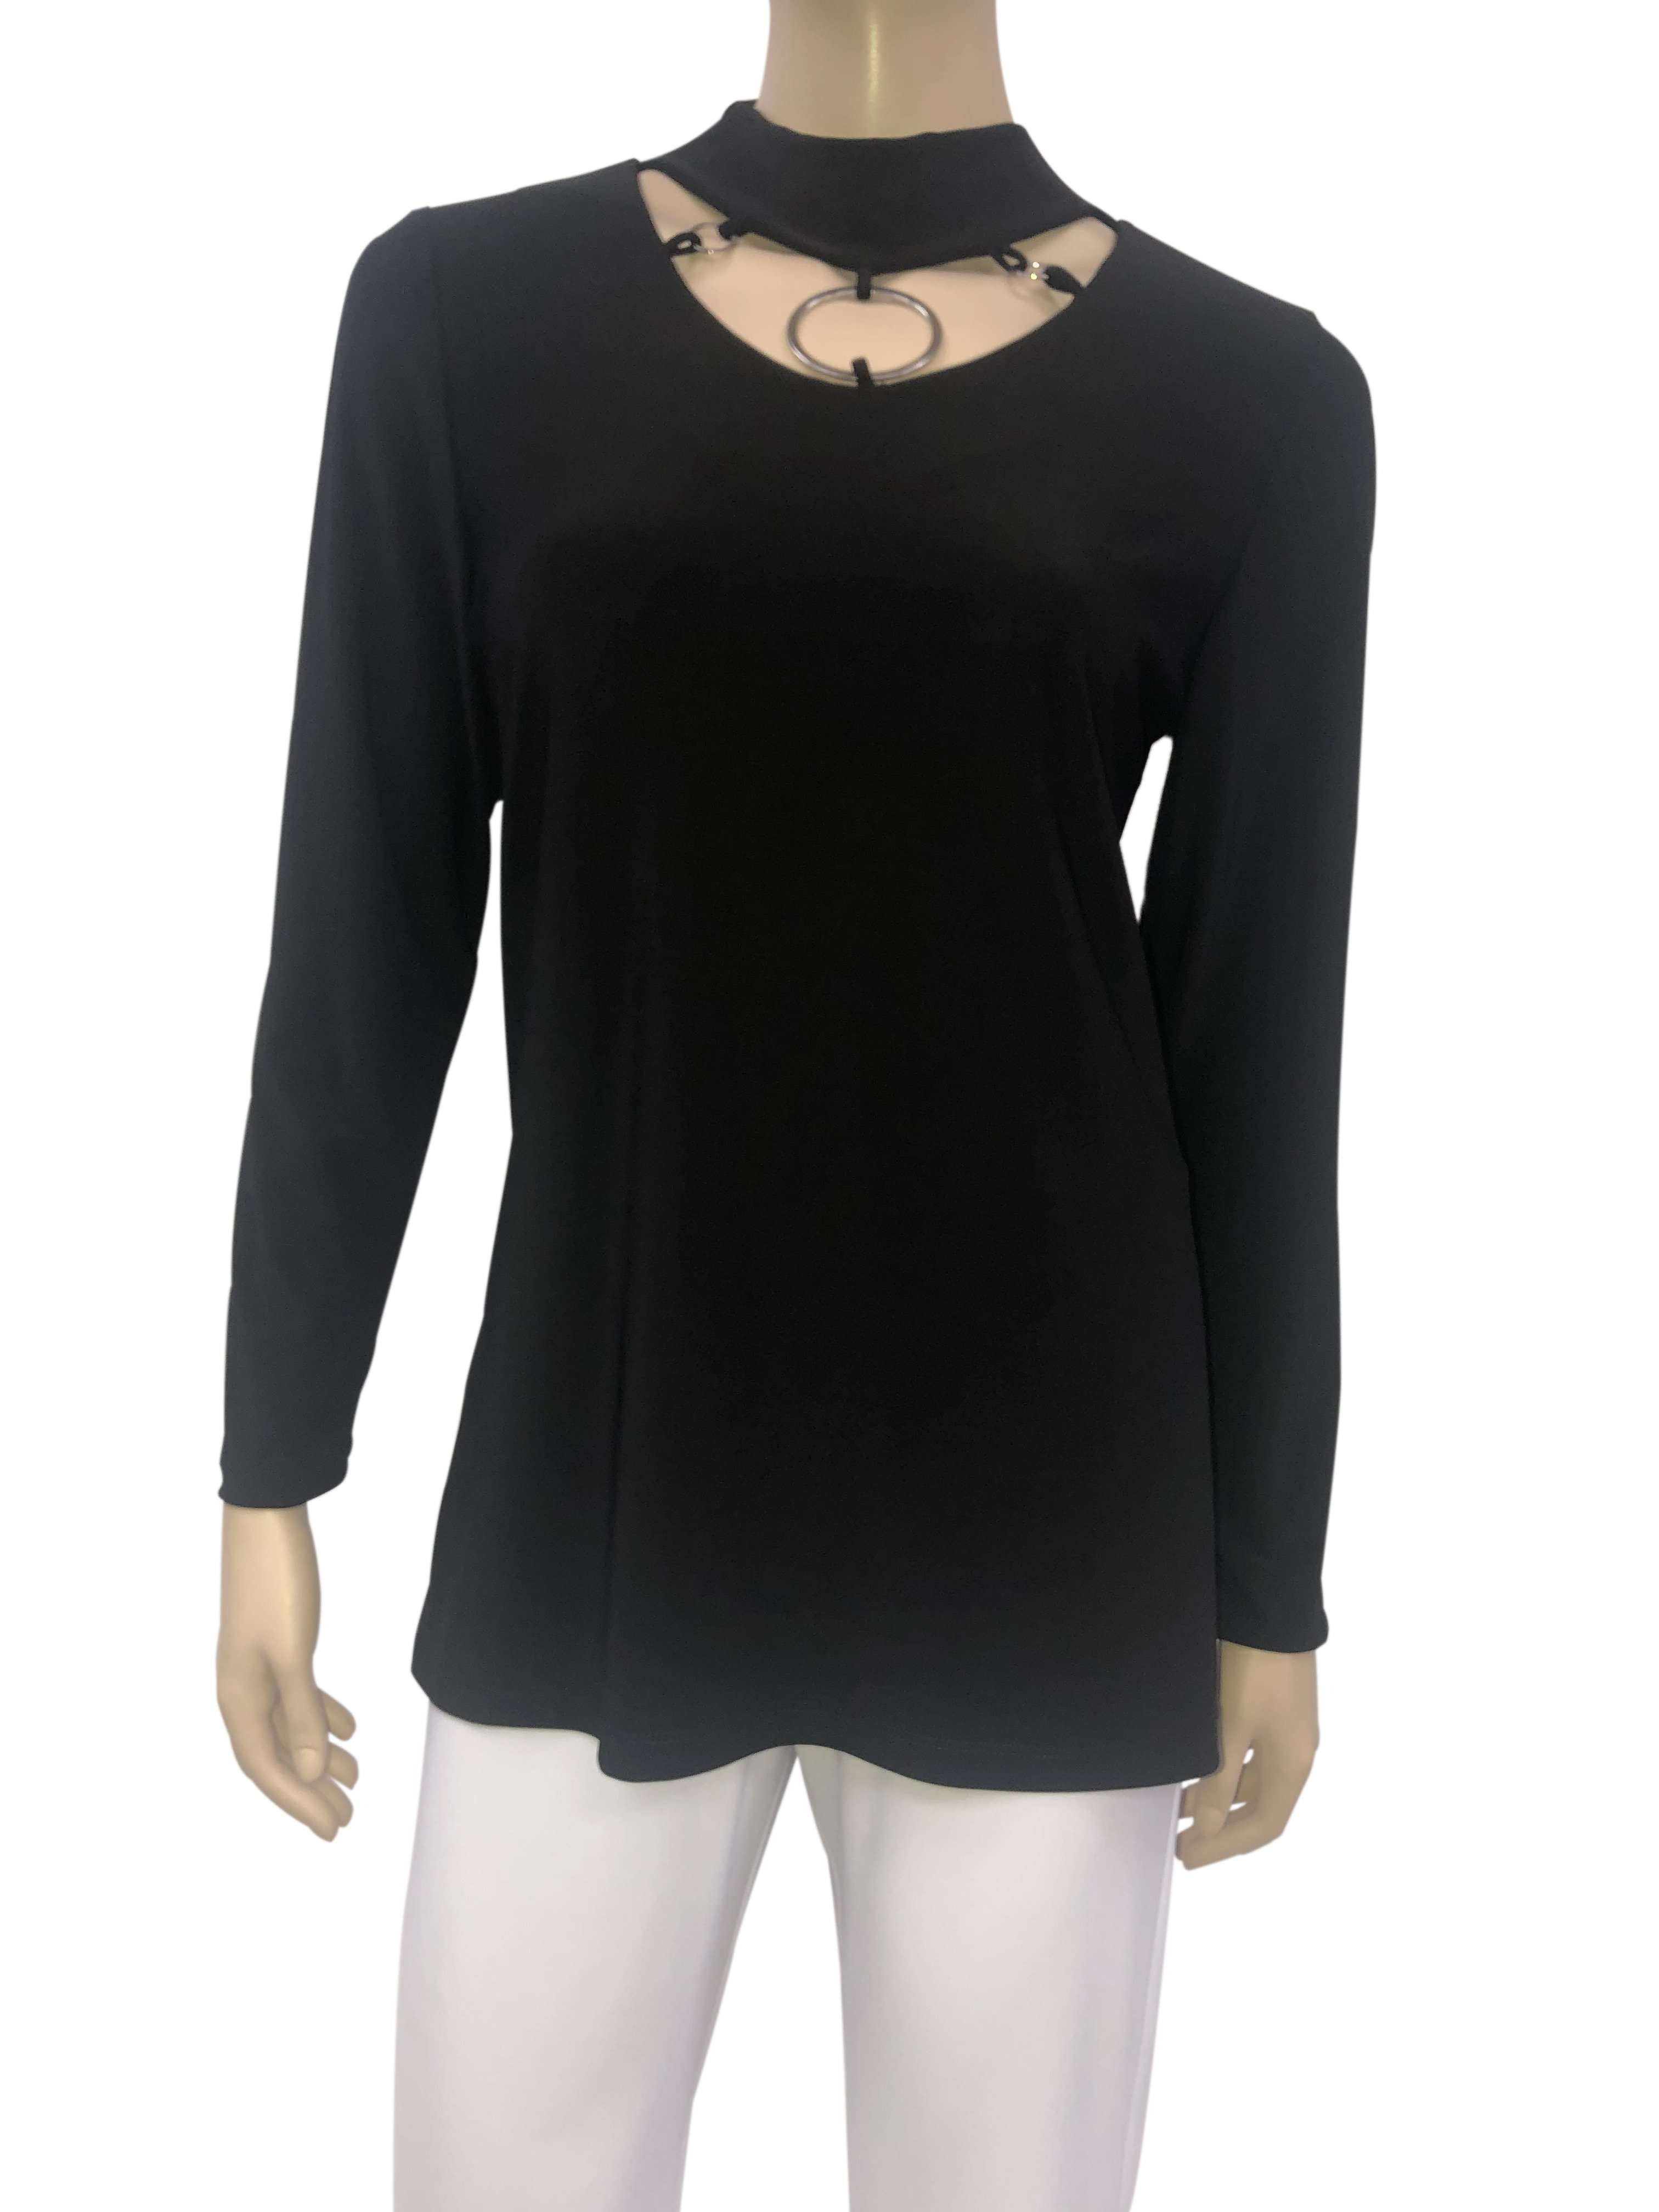 Black Elegant Choker Neck Sexy Tunic On Sale Now - Yvonne Marie - Yvonne Marie